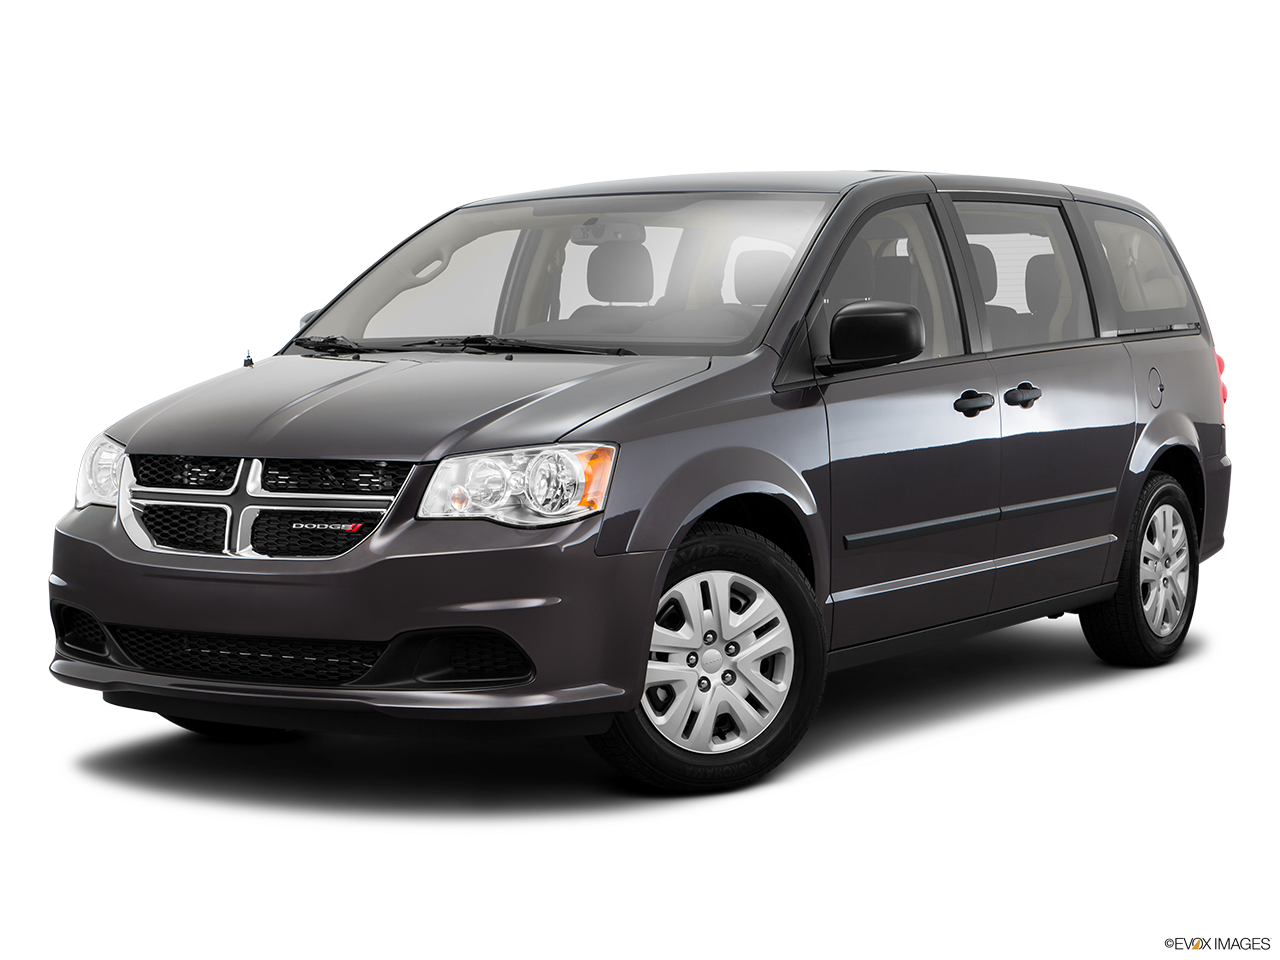 Test Drive A 2016 Dodge Grand Caravan at Premier Dodge in Tracy